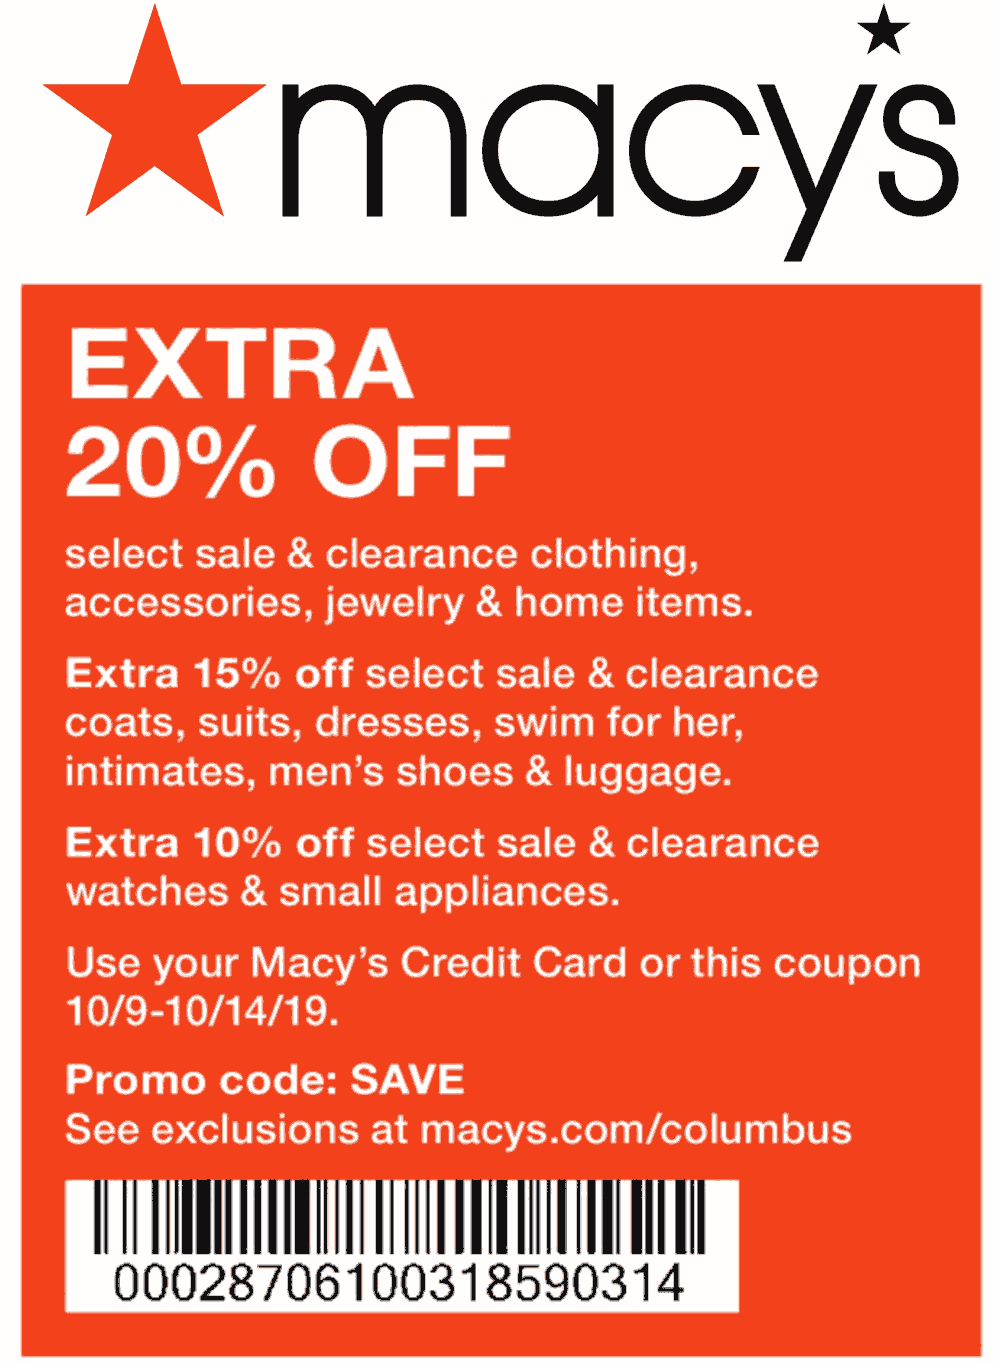 Macys Coupon February 2020 Extra 20% off at Macys, or online via promo code SAVE